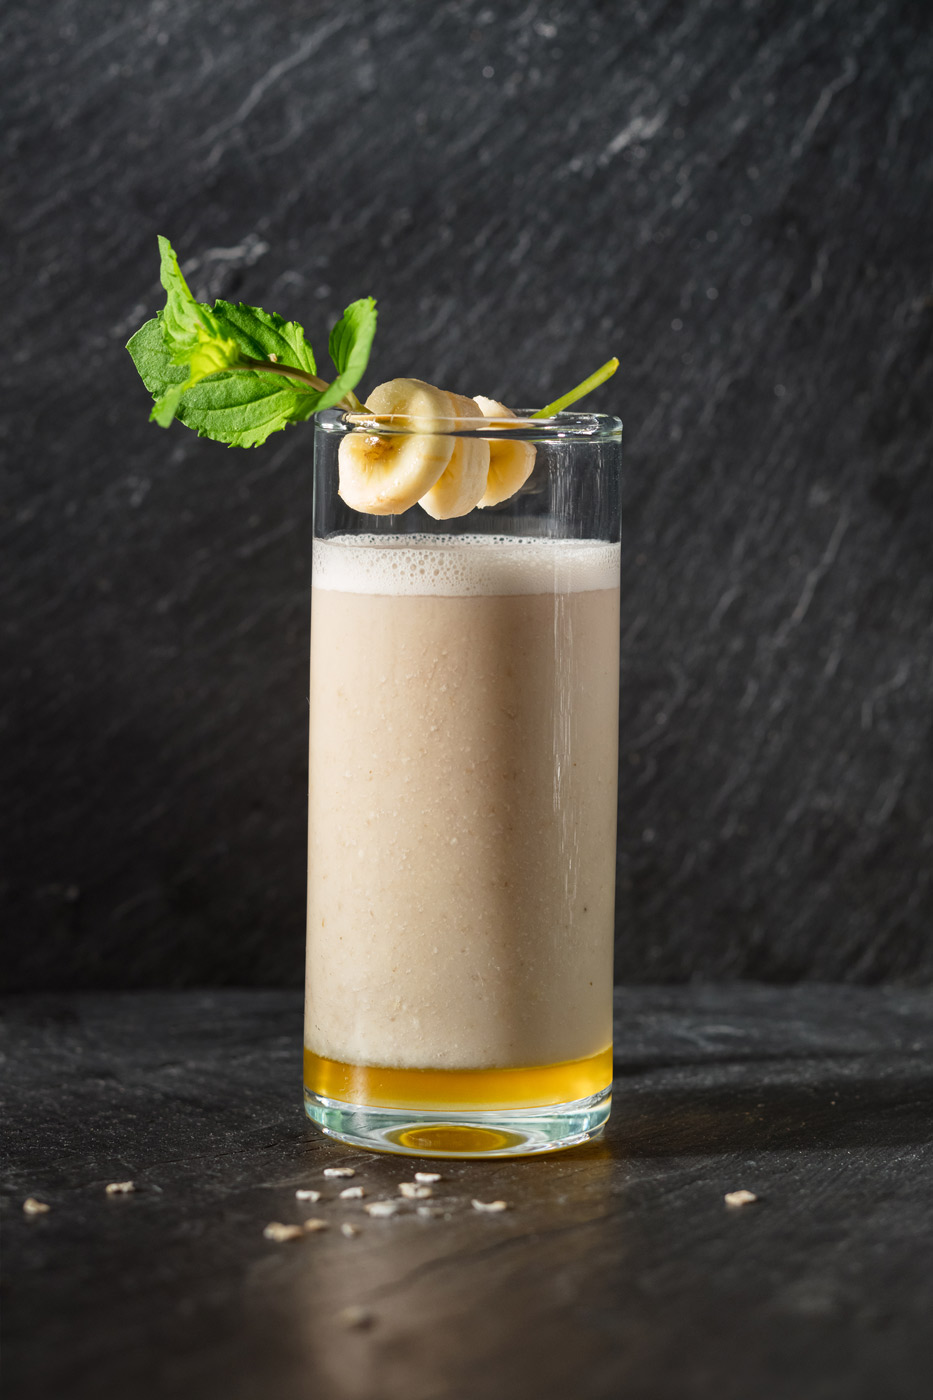 Recipe image of banana and rice milk cocktail with maple syrup